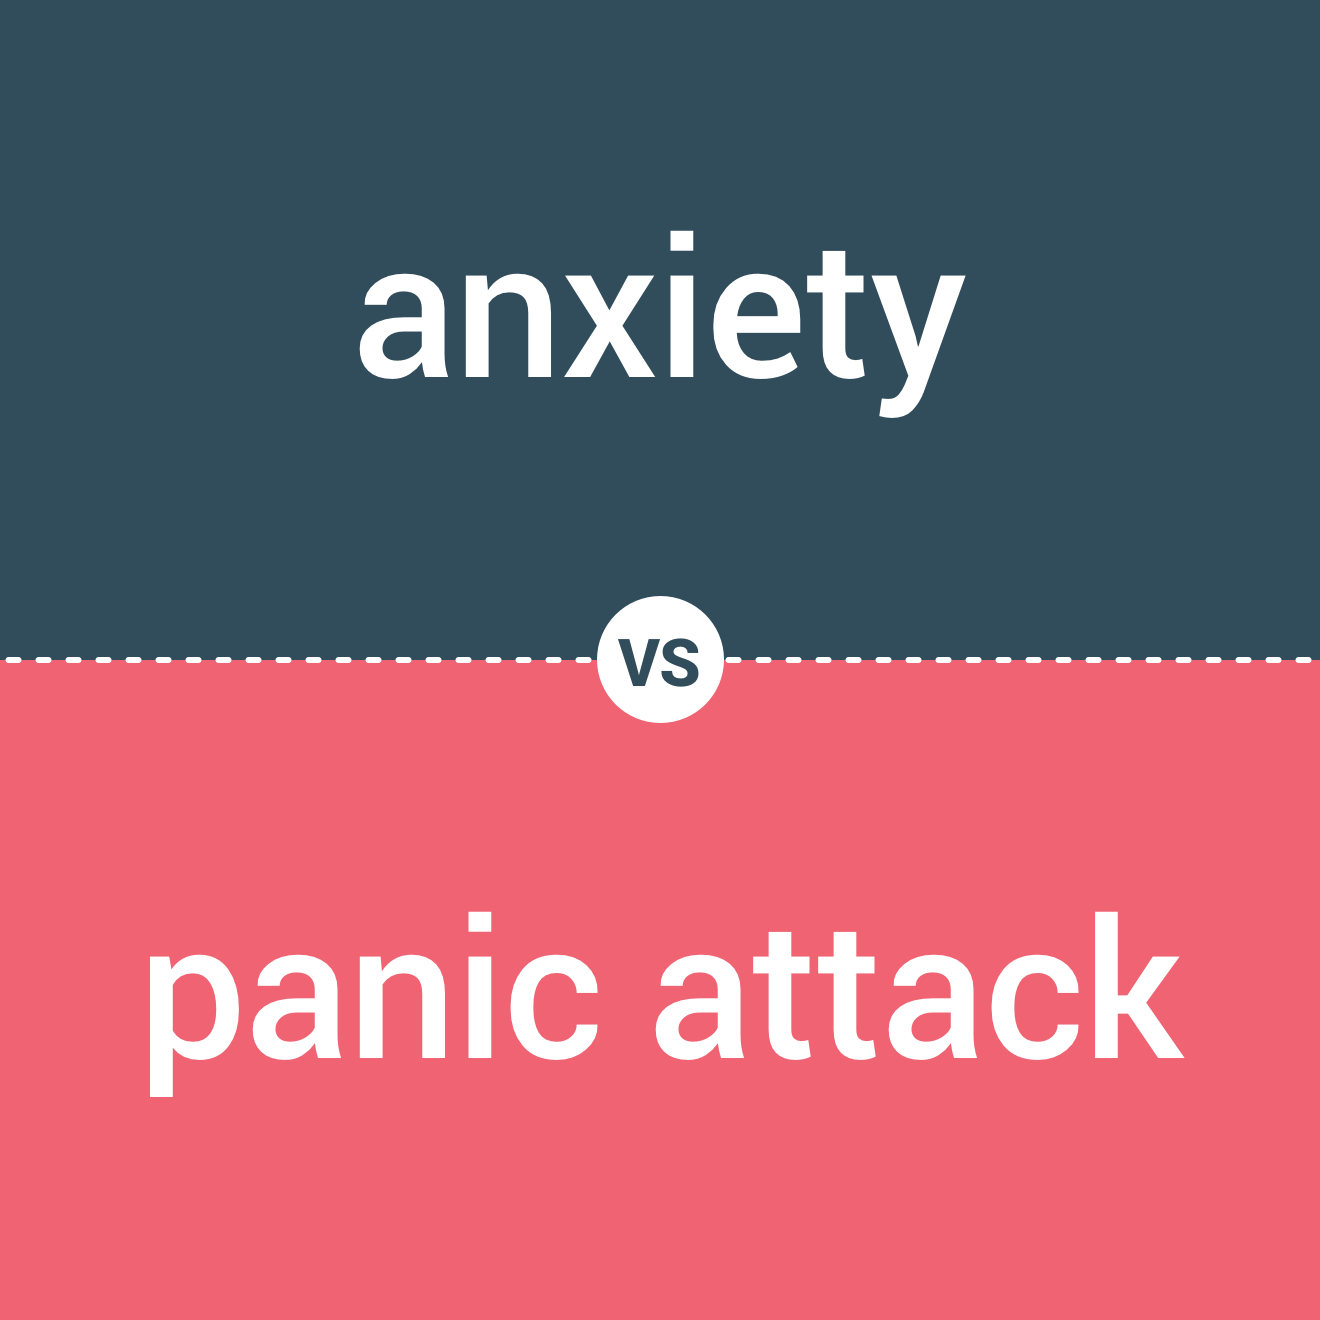 anxiety vs. panic attack blue red image